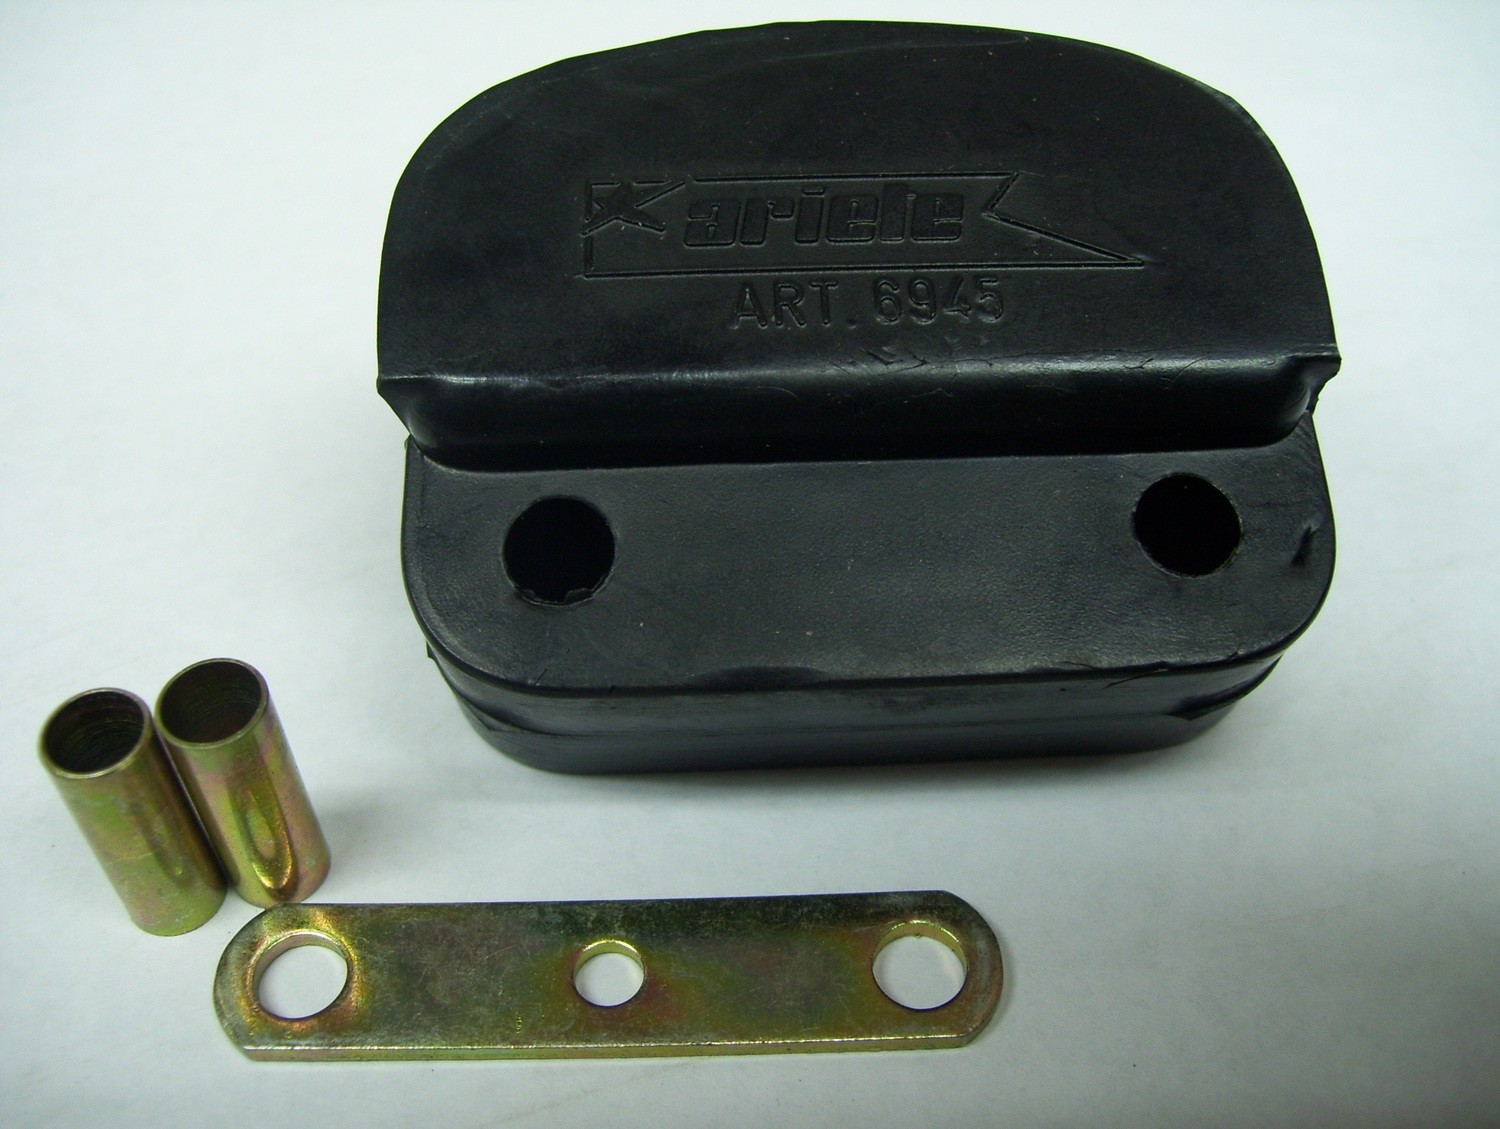 Fantic 1989-93 chain tensioner rubbing block